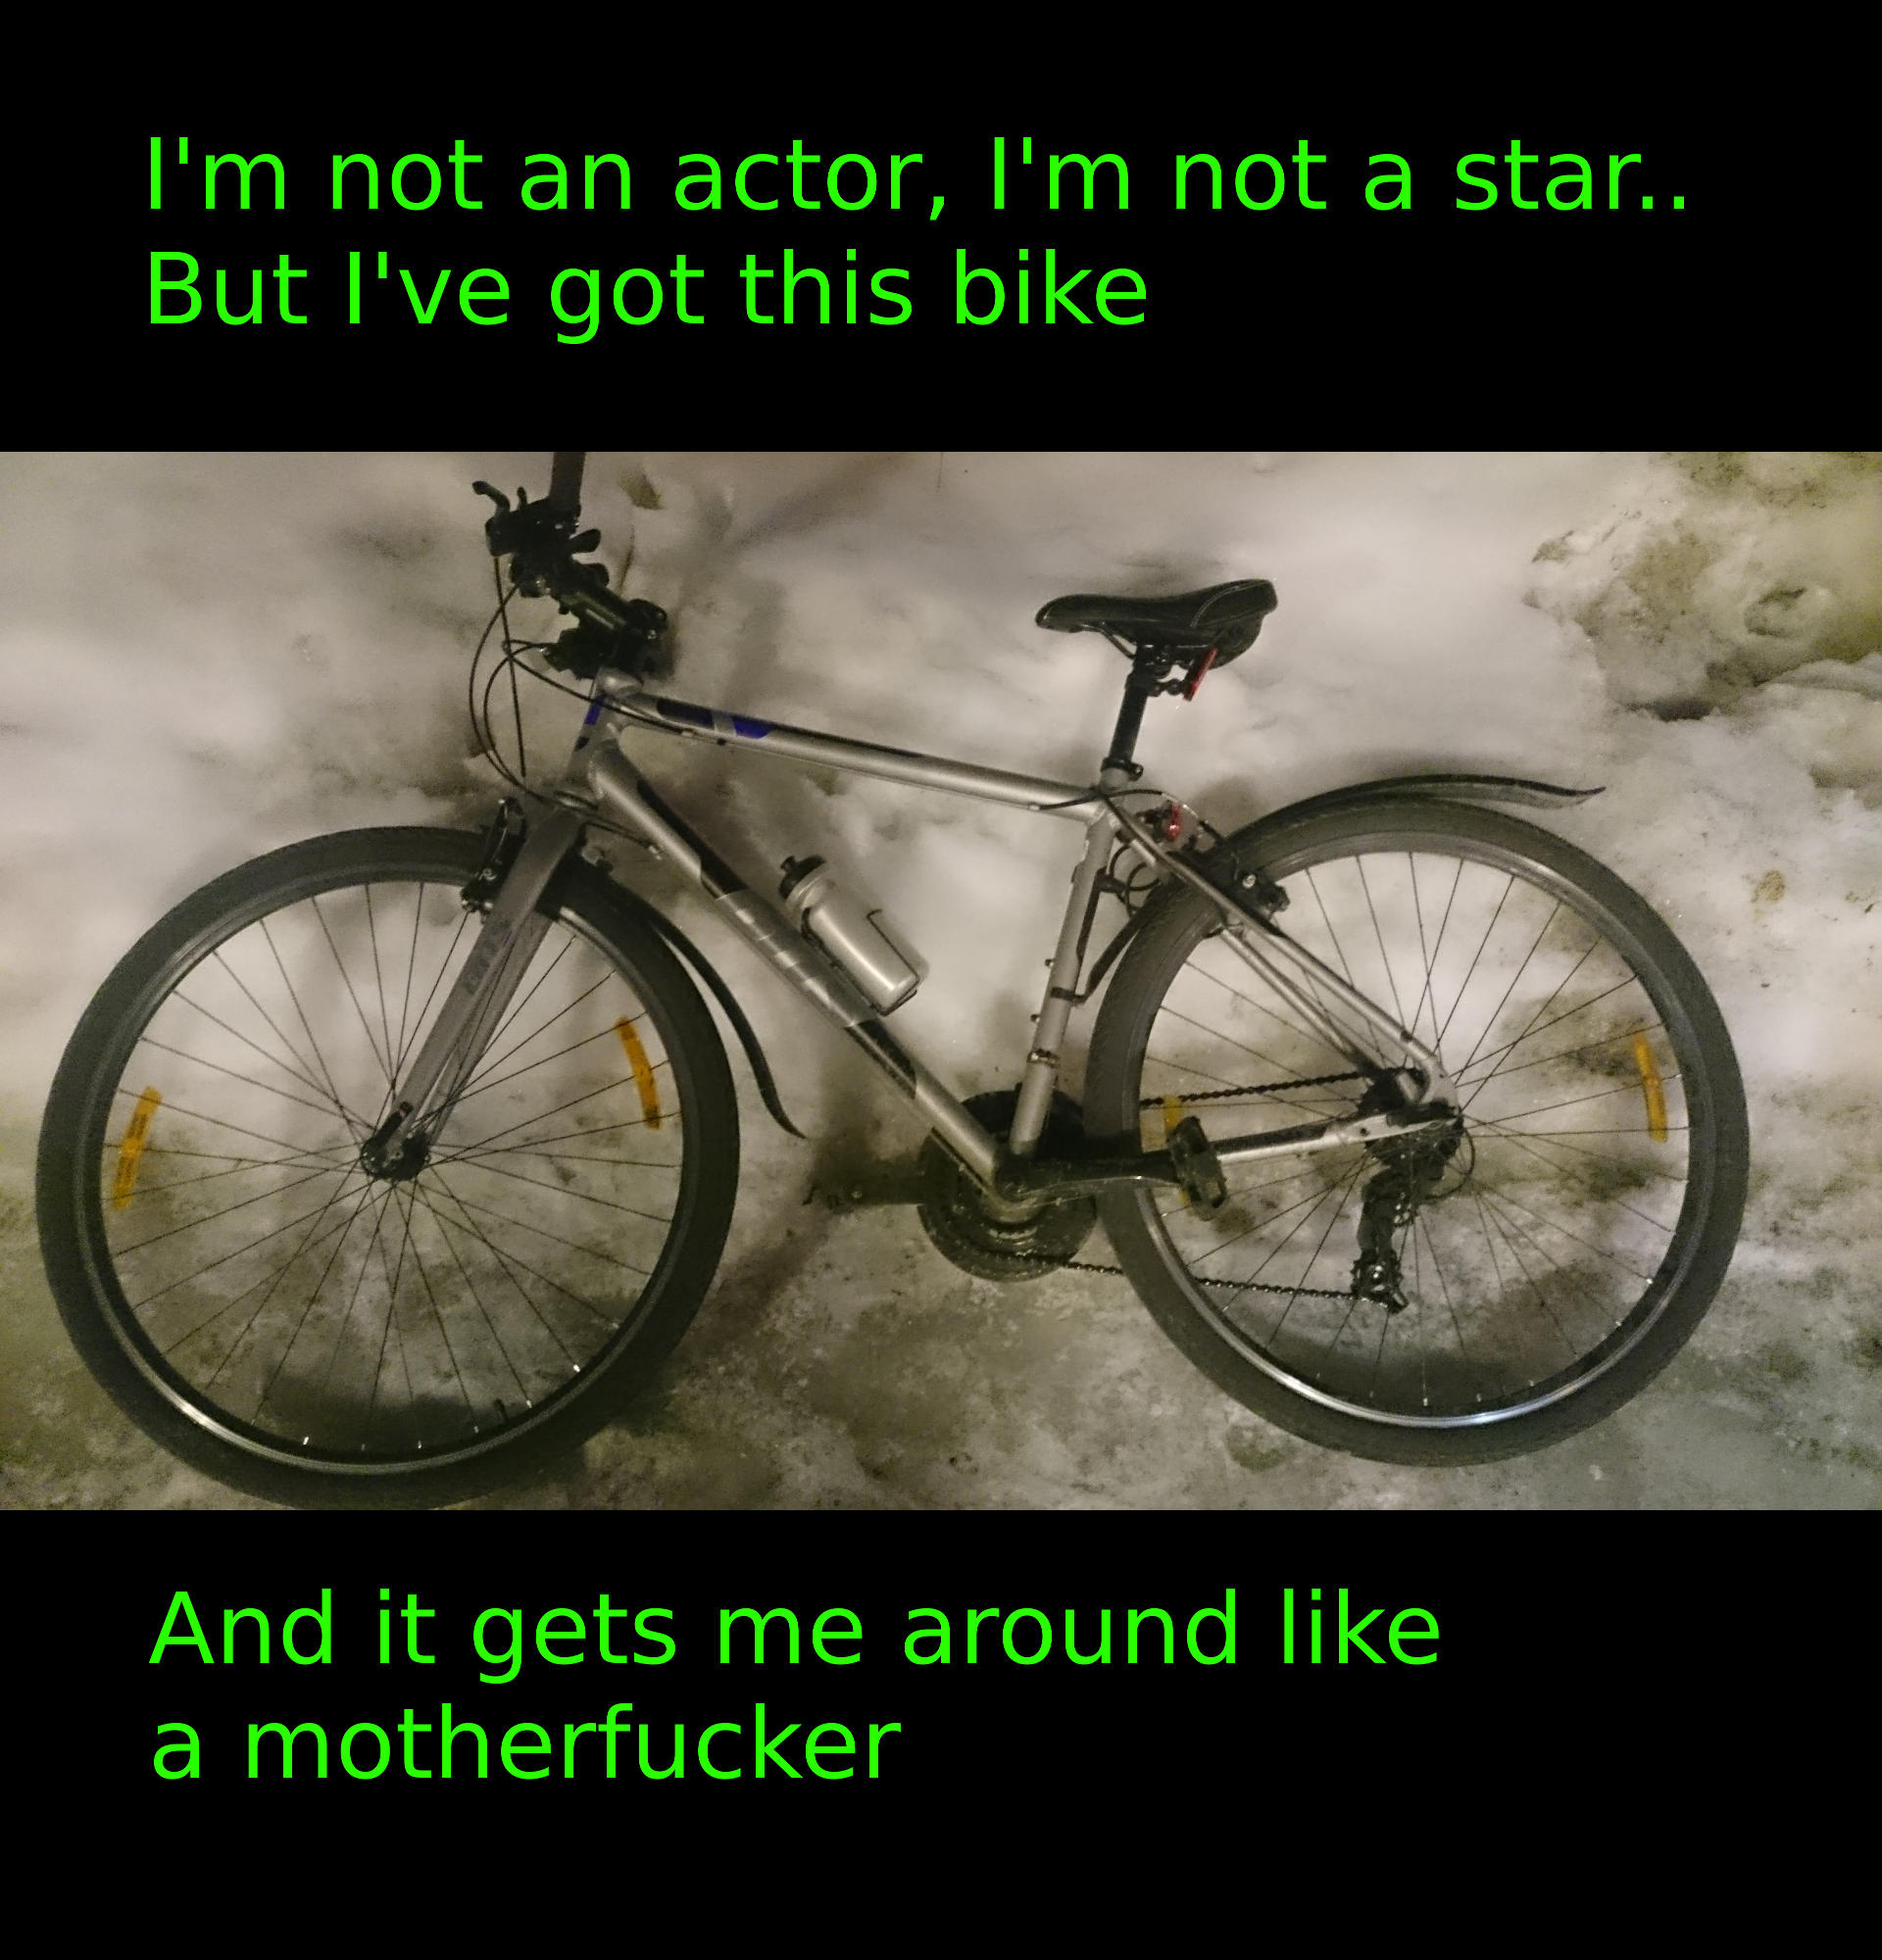 Picture of bike, with text I'm not an actor, I'm not a star, but I've got this bike and it gets me around like a motherfucker